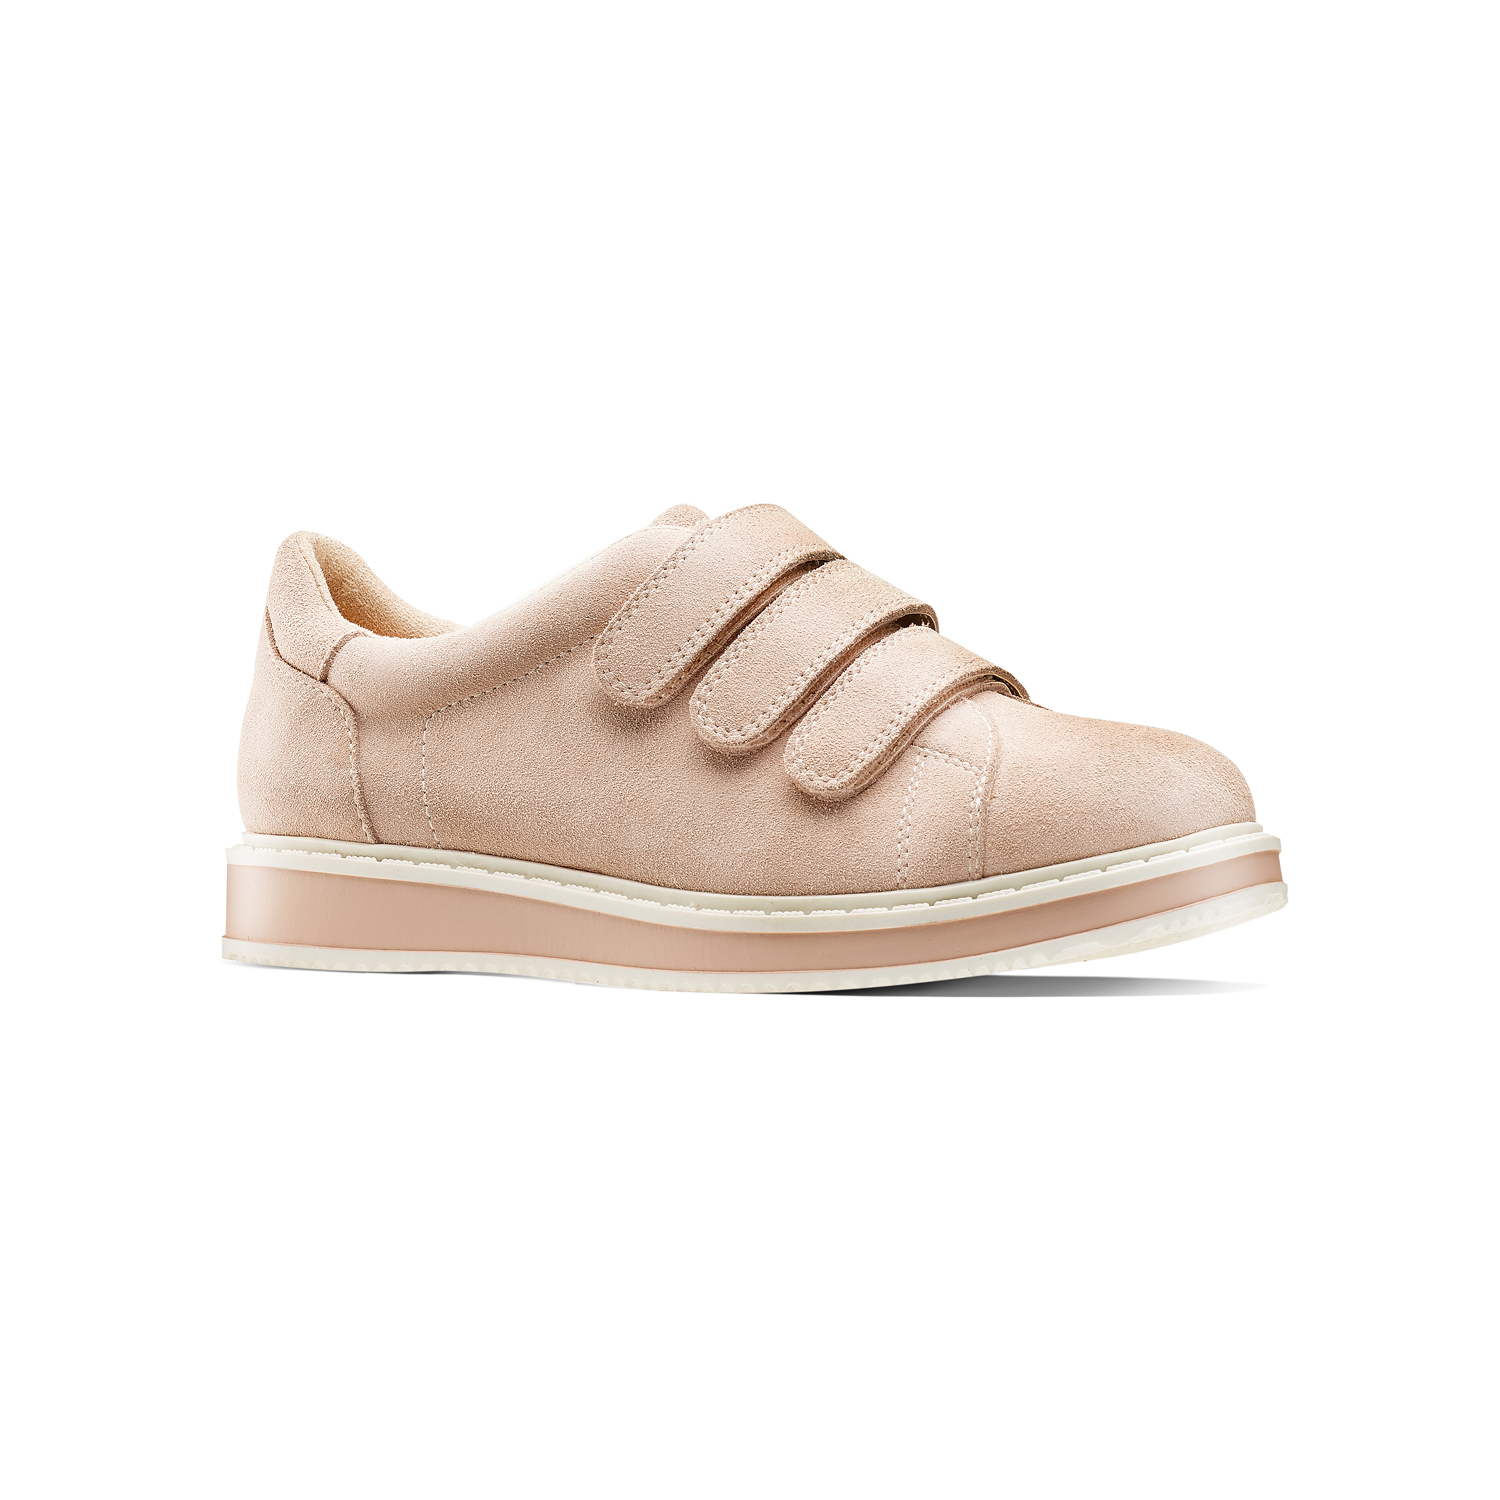 Sneakers in suede Bata a 39,99 euro